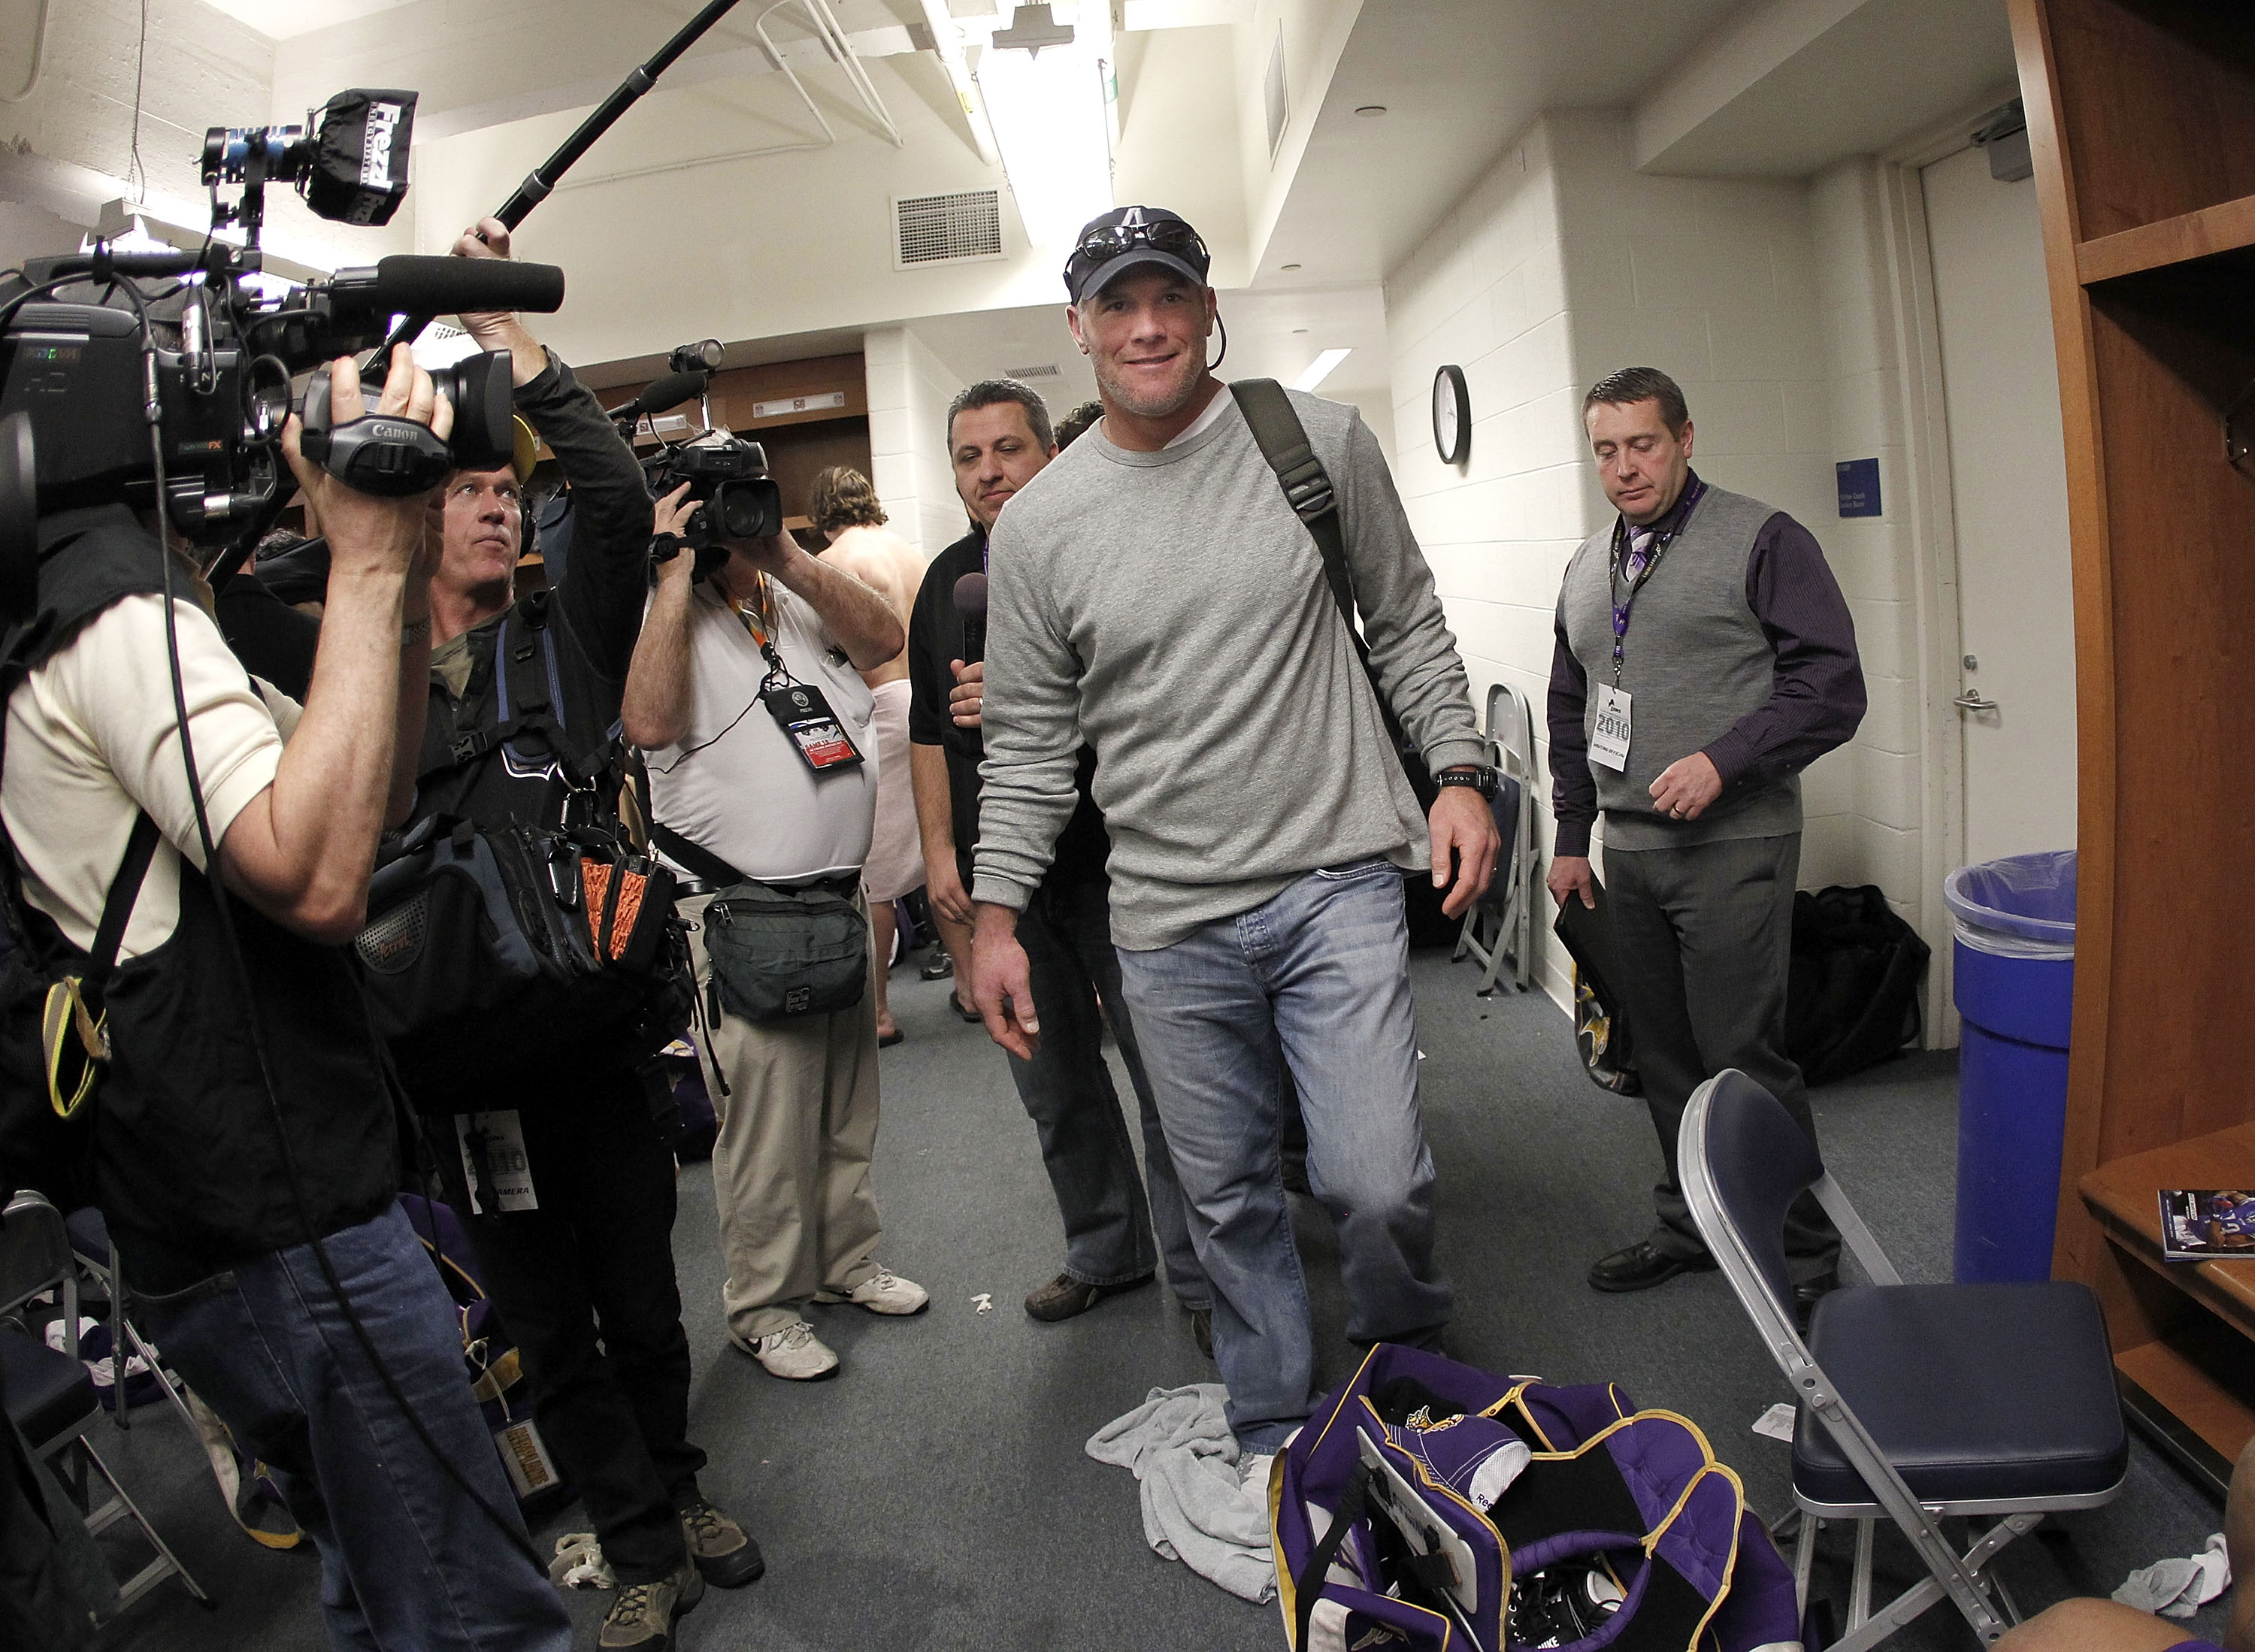 DETROIT, MI - JANUARY 02:  Brett Favre #4 of the Minnesota Vikings heads to a post game press conference after a 13-20 loss to the Detroit Lions at Ford Field on January 2, 2011 in Detroit, Michigan.  (Photo by Gregory Shamus/Getty Images)